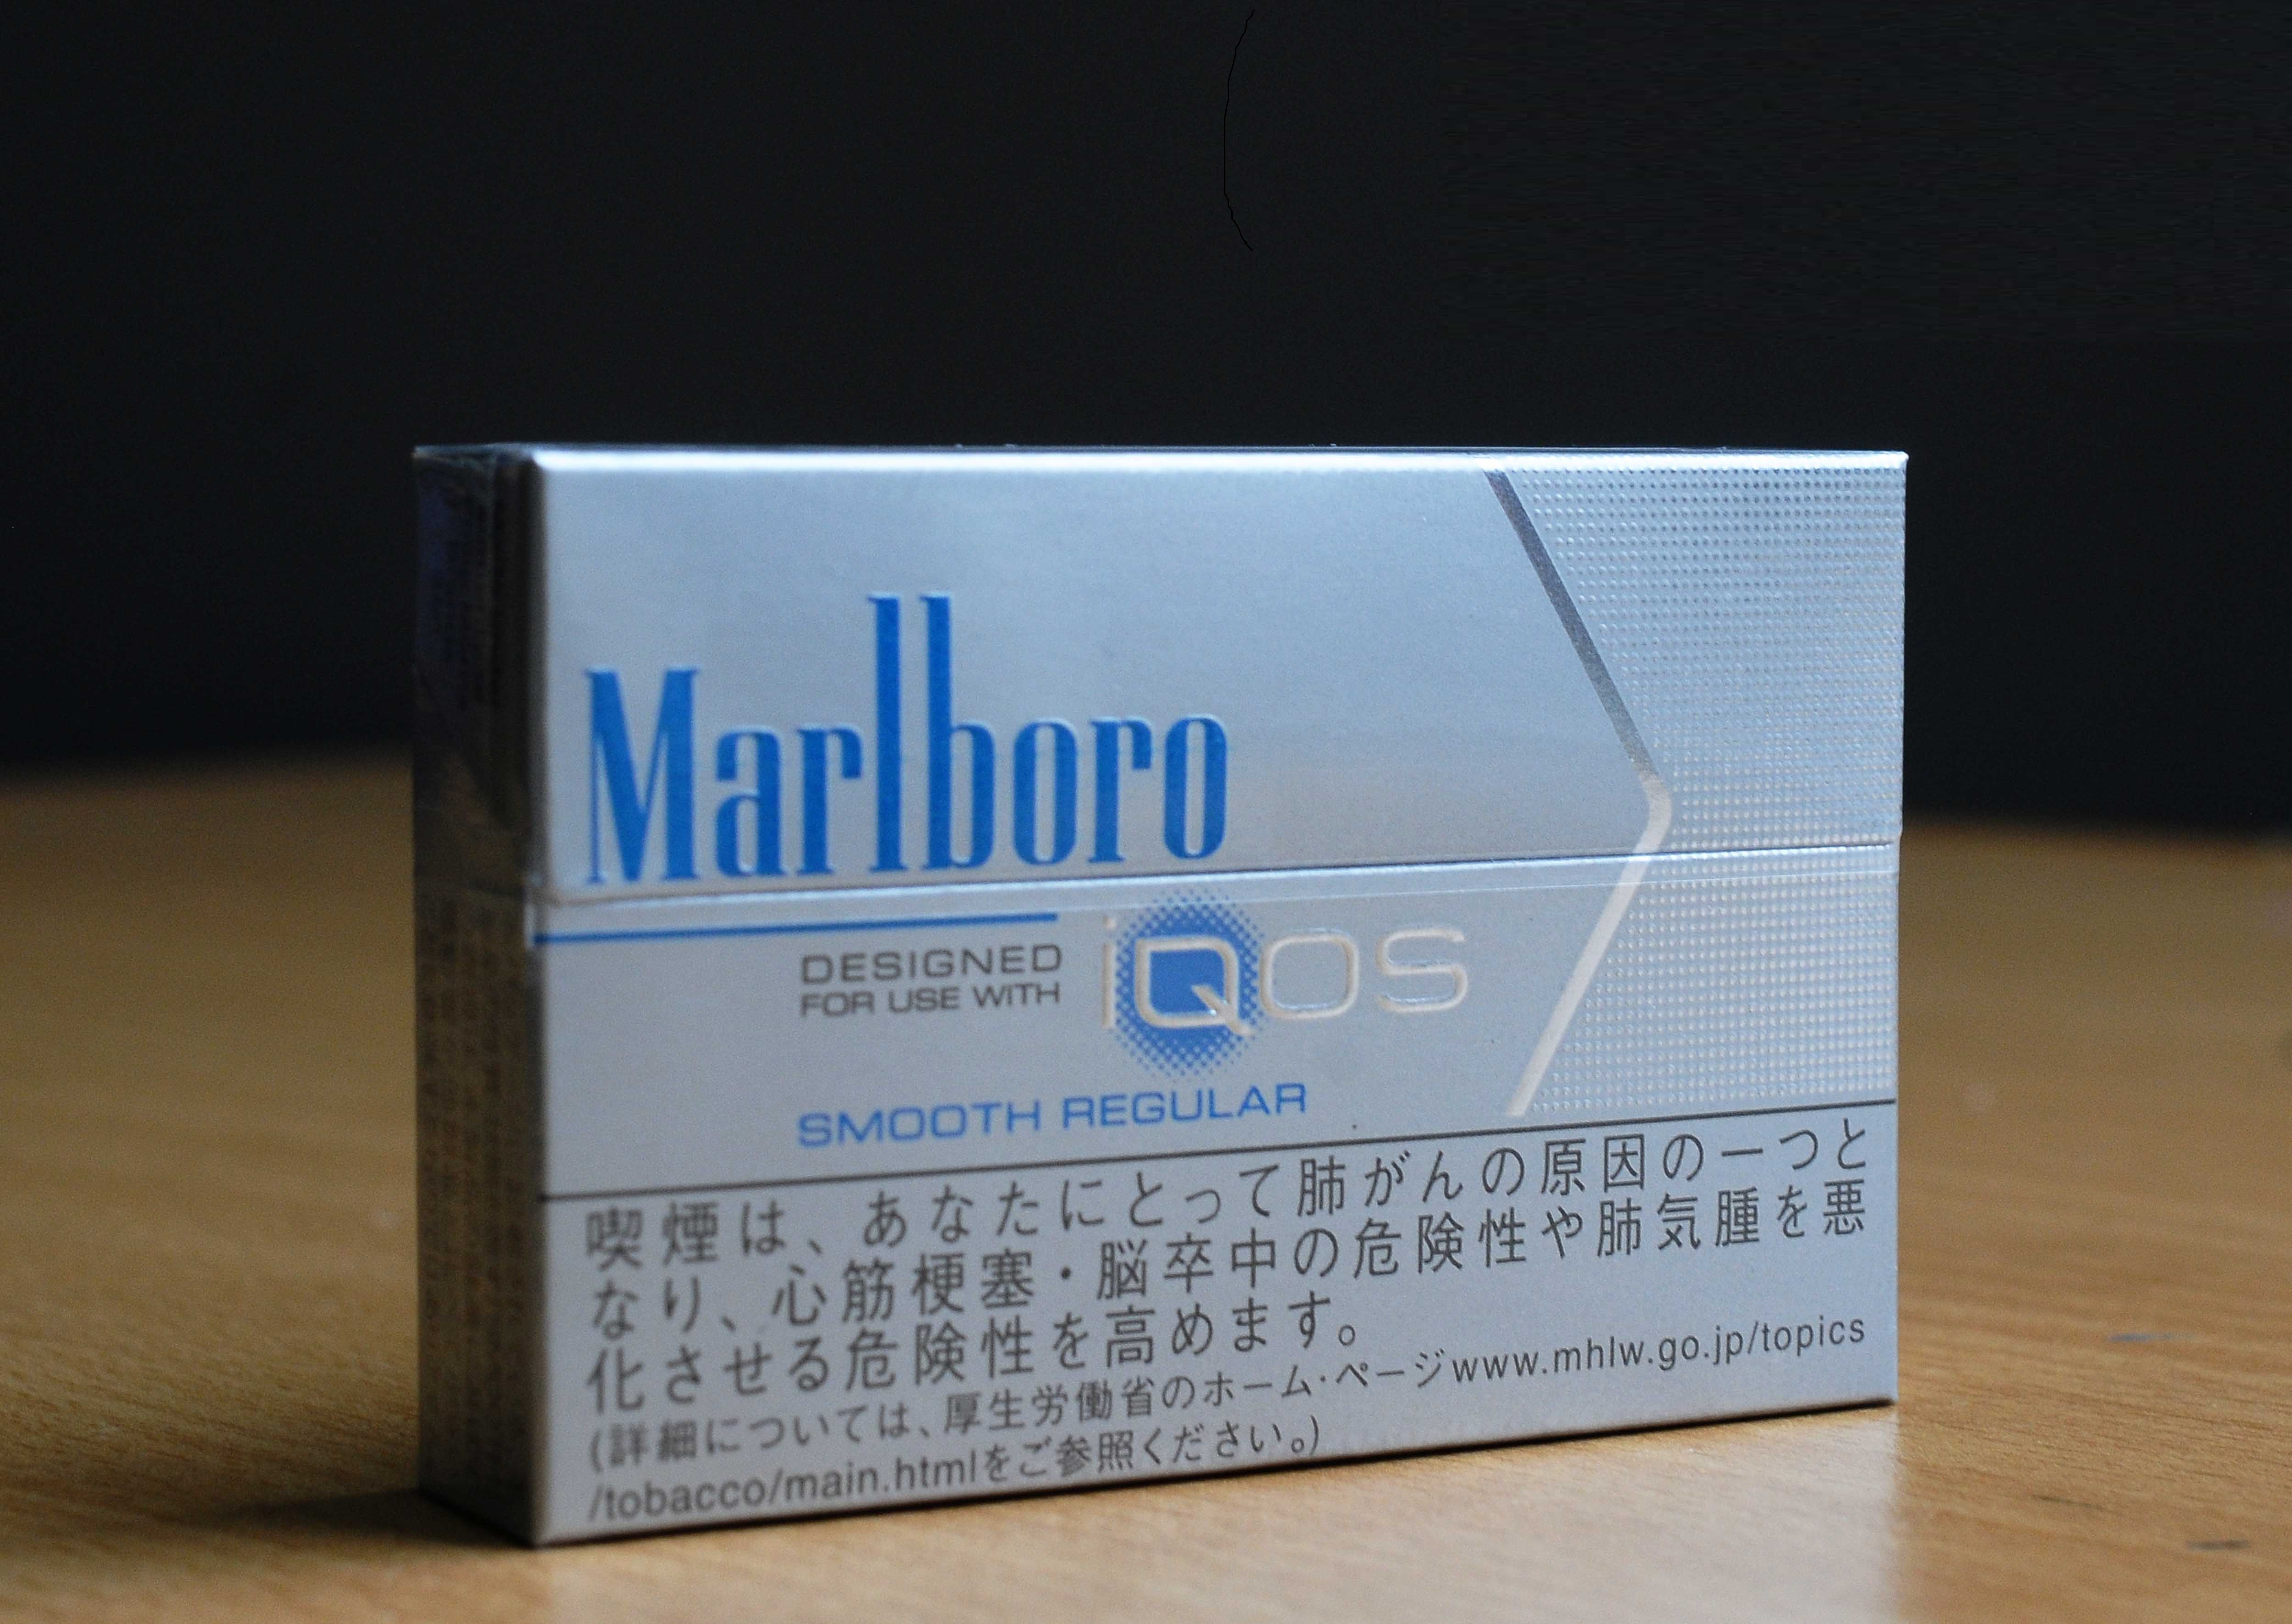 https://taudientu.net/wp-content/uploads/2018/02/Marlboro-Smooth-nhat-02.jpg